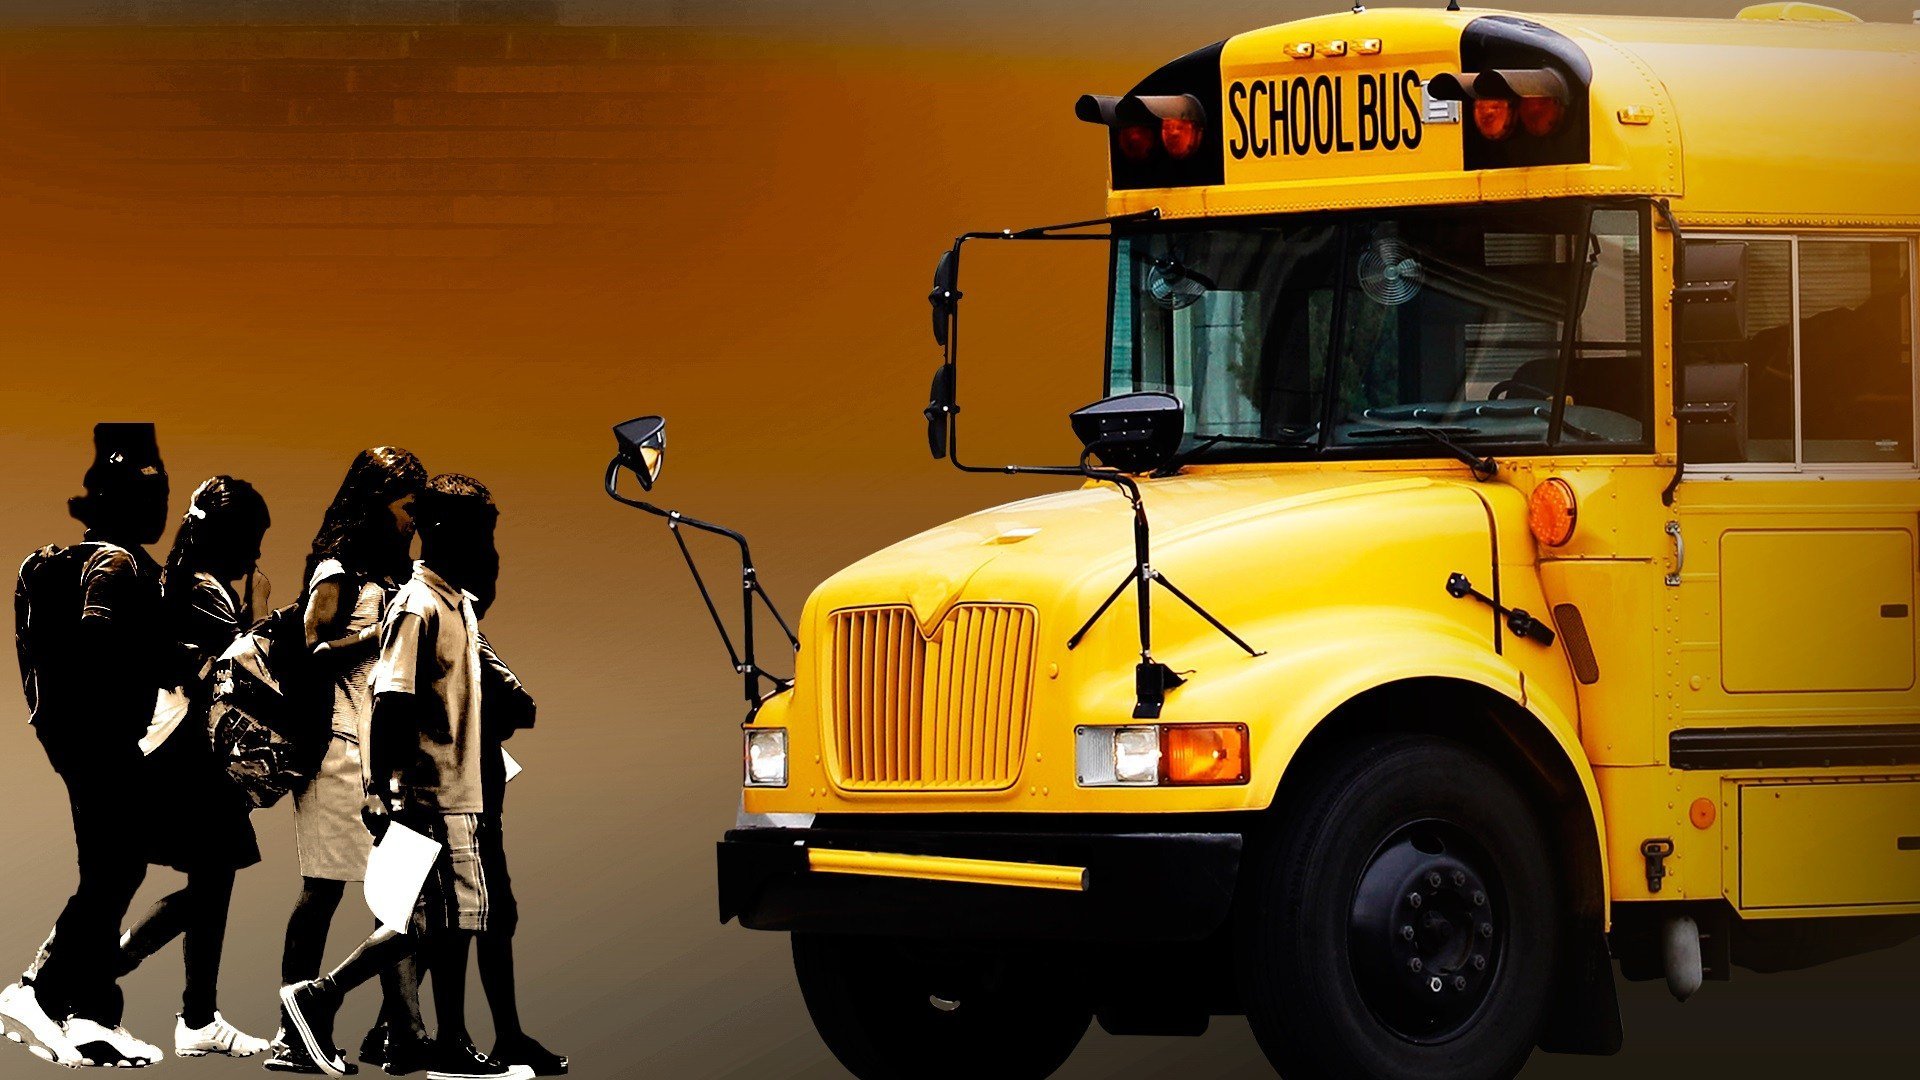 When do you stop for a school bus?